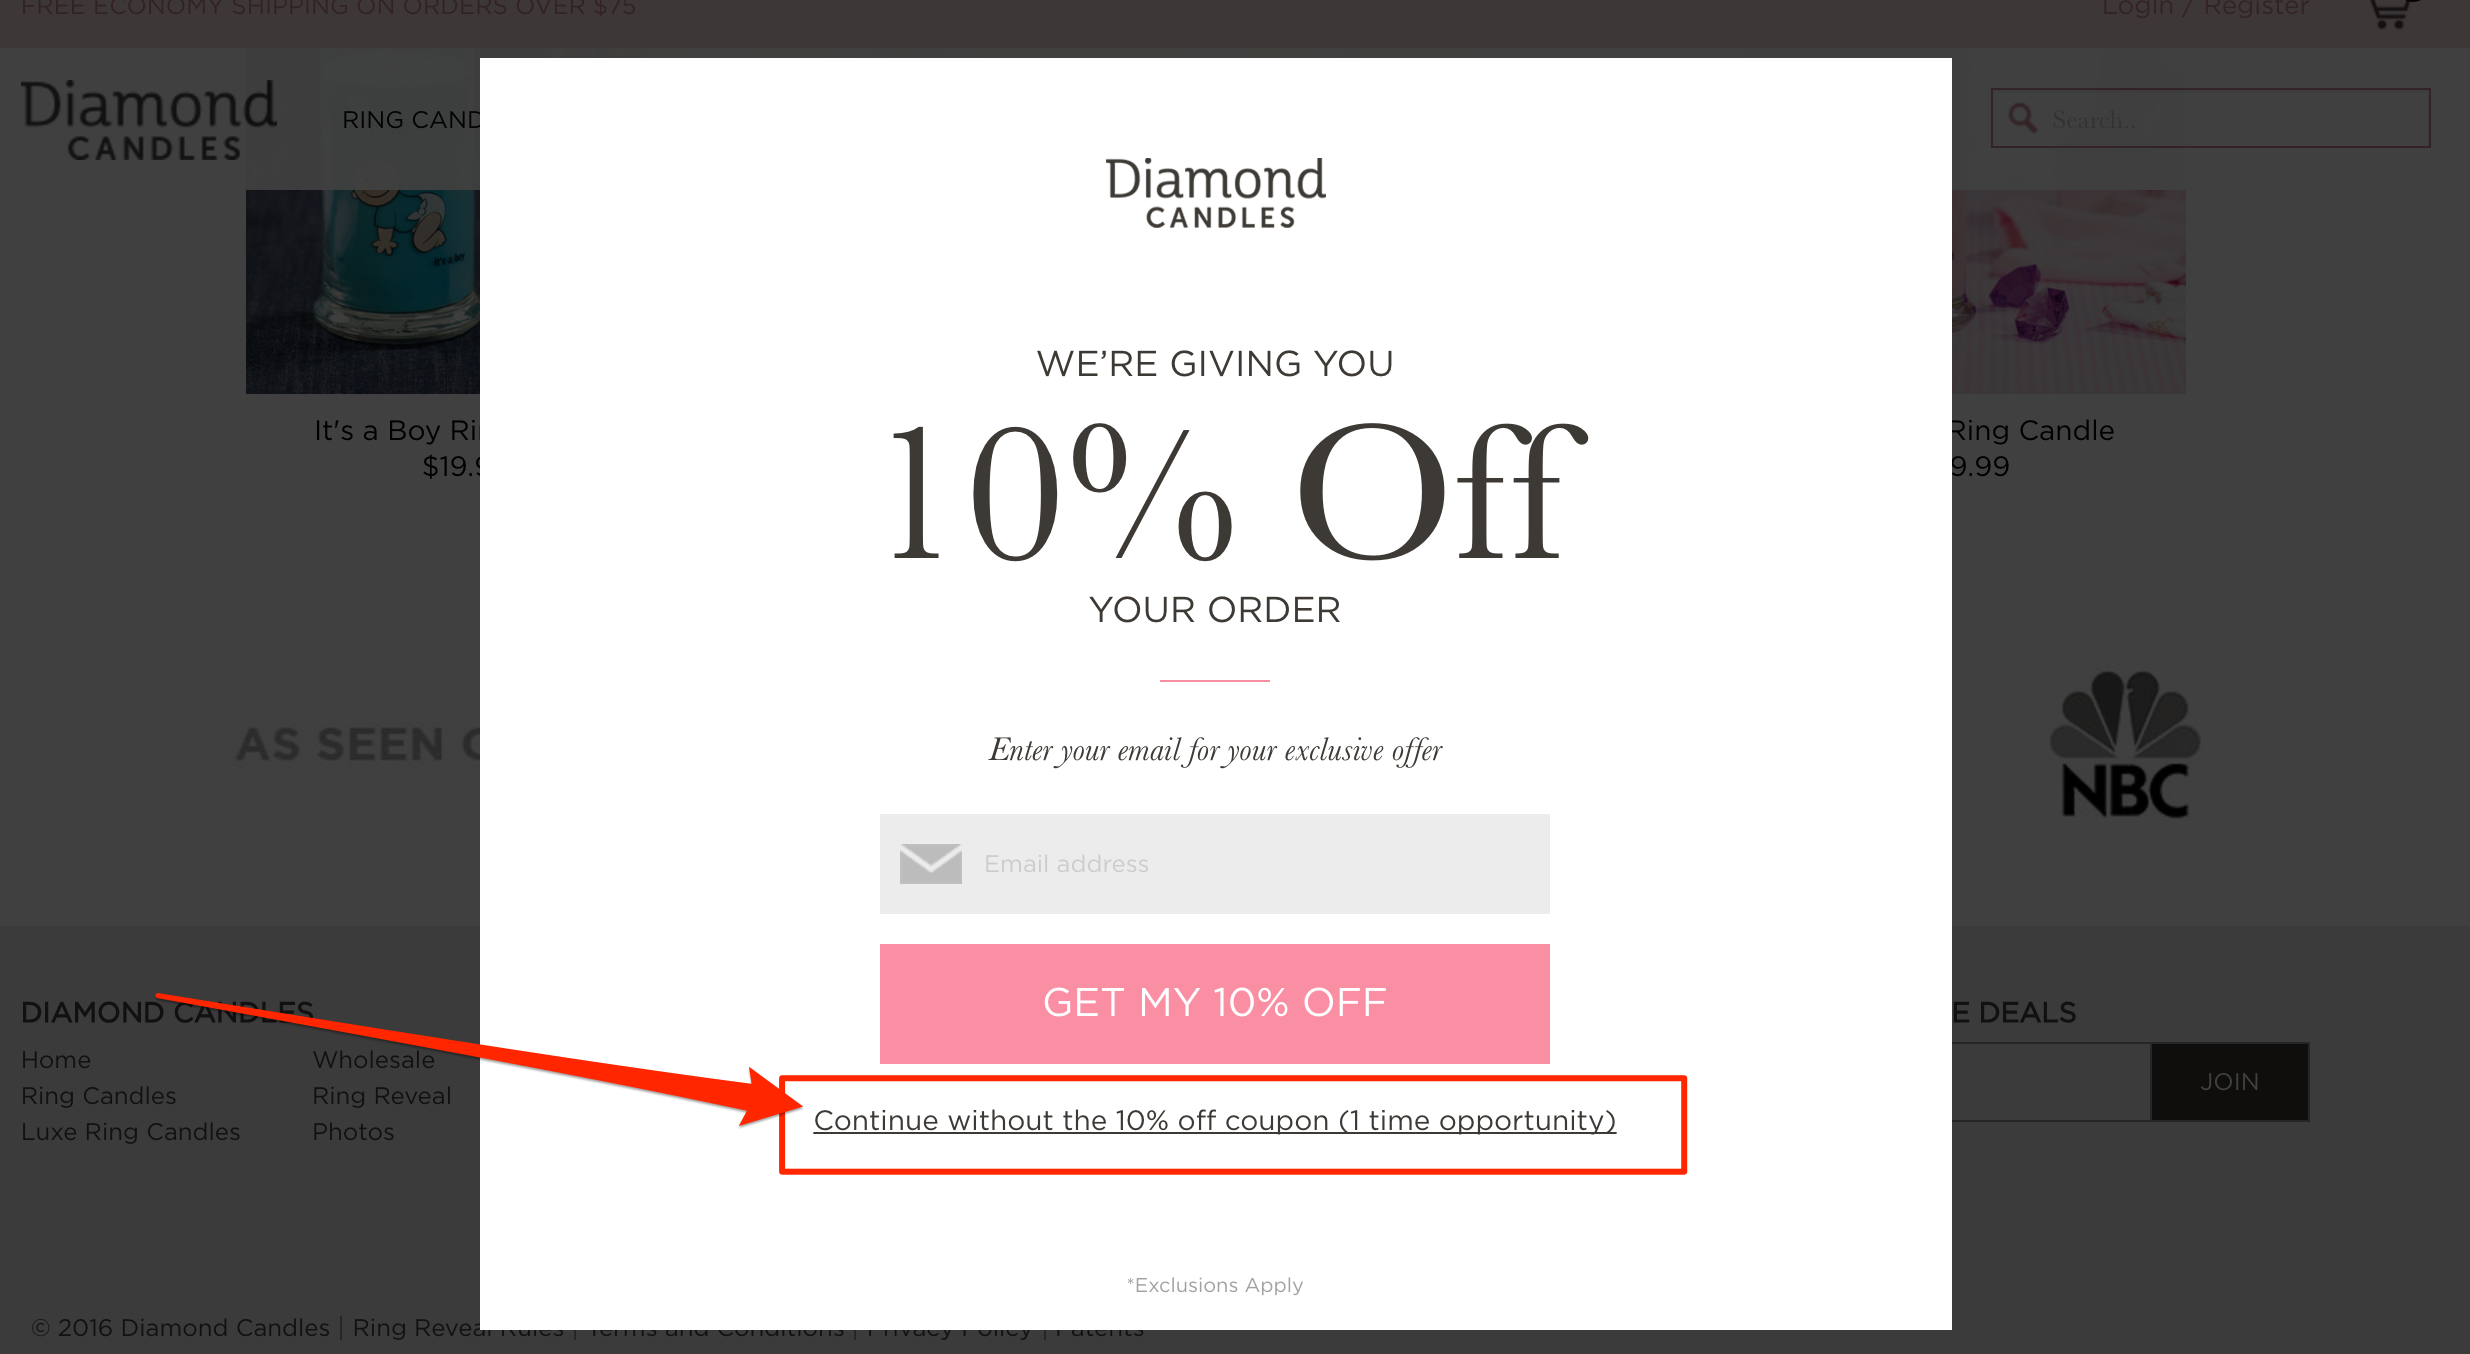 A popup on Diamond Candles featuring a one-time offer